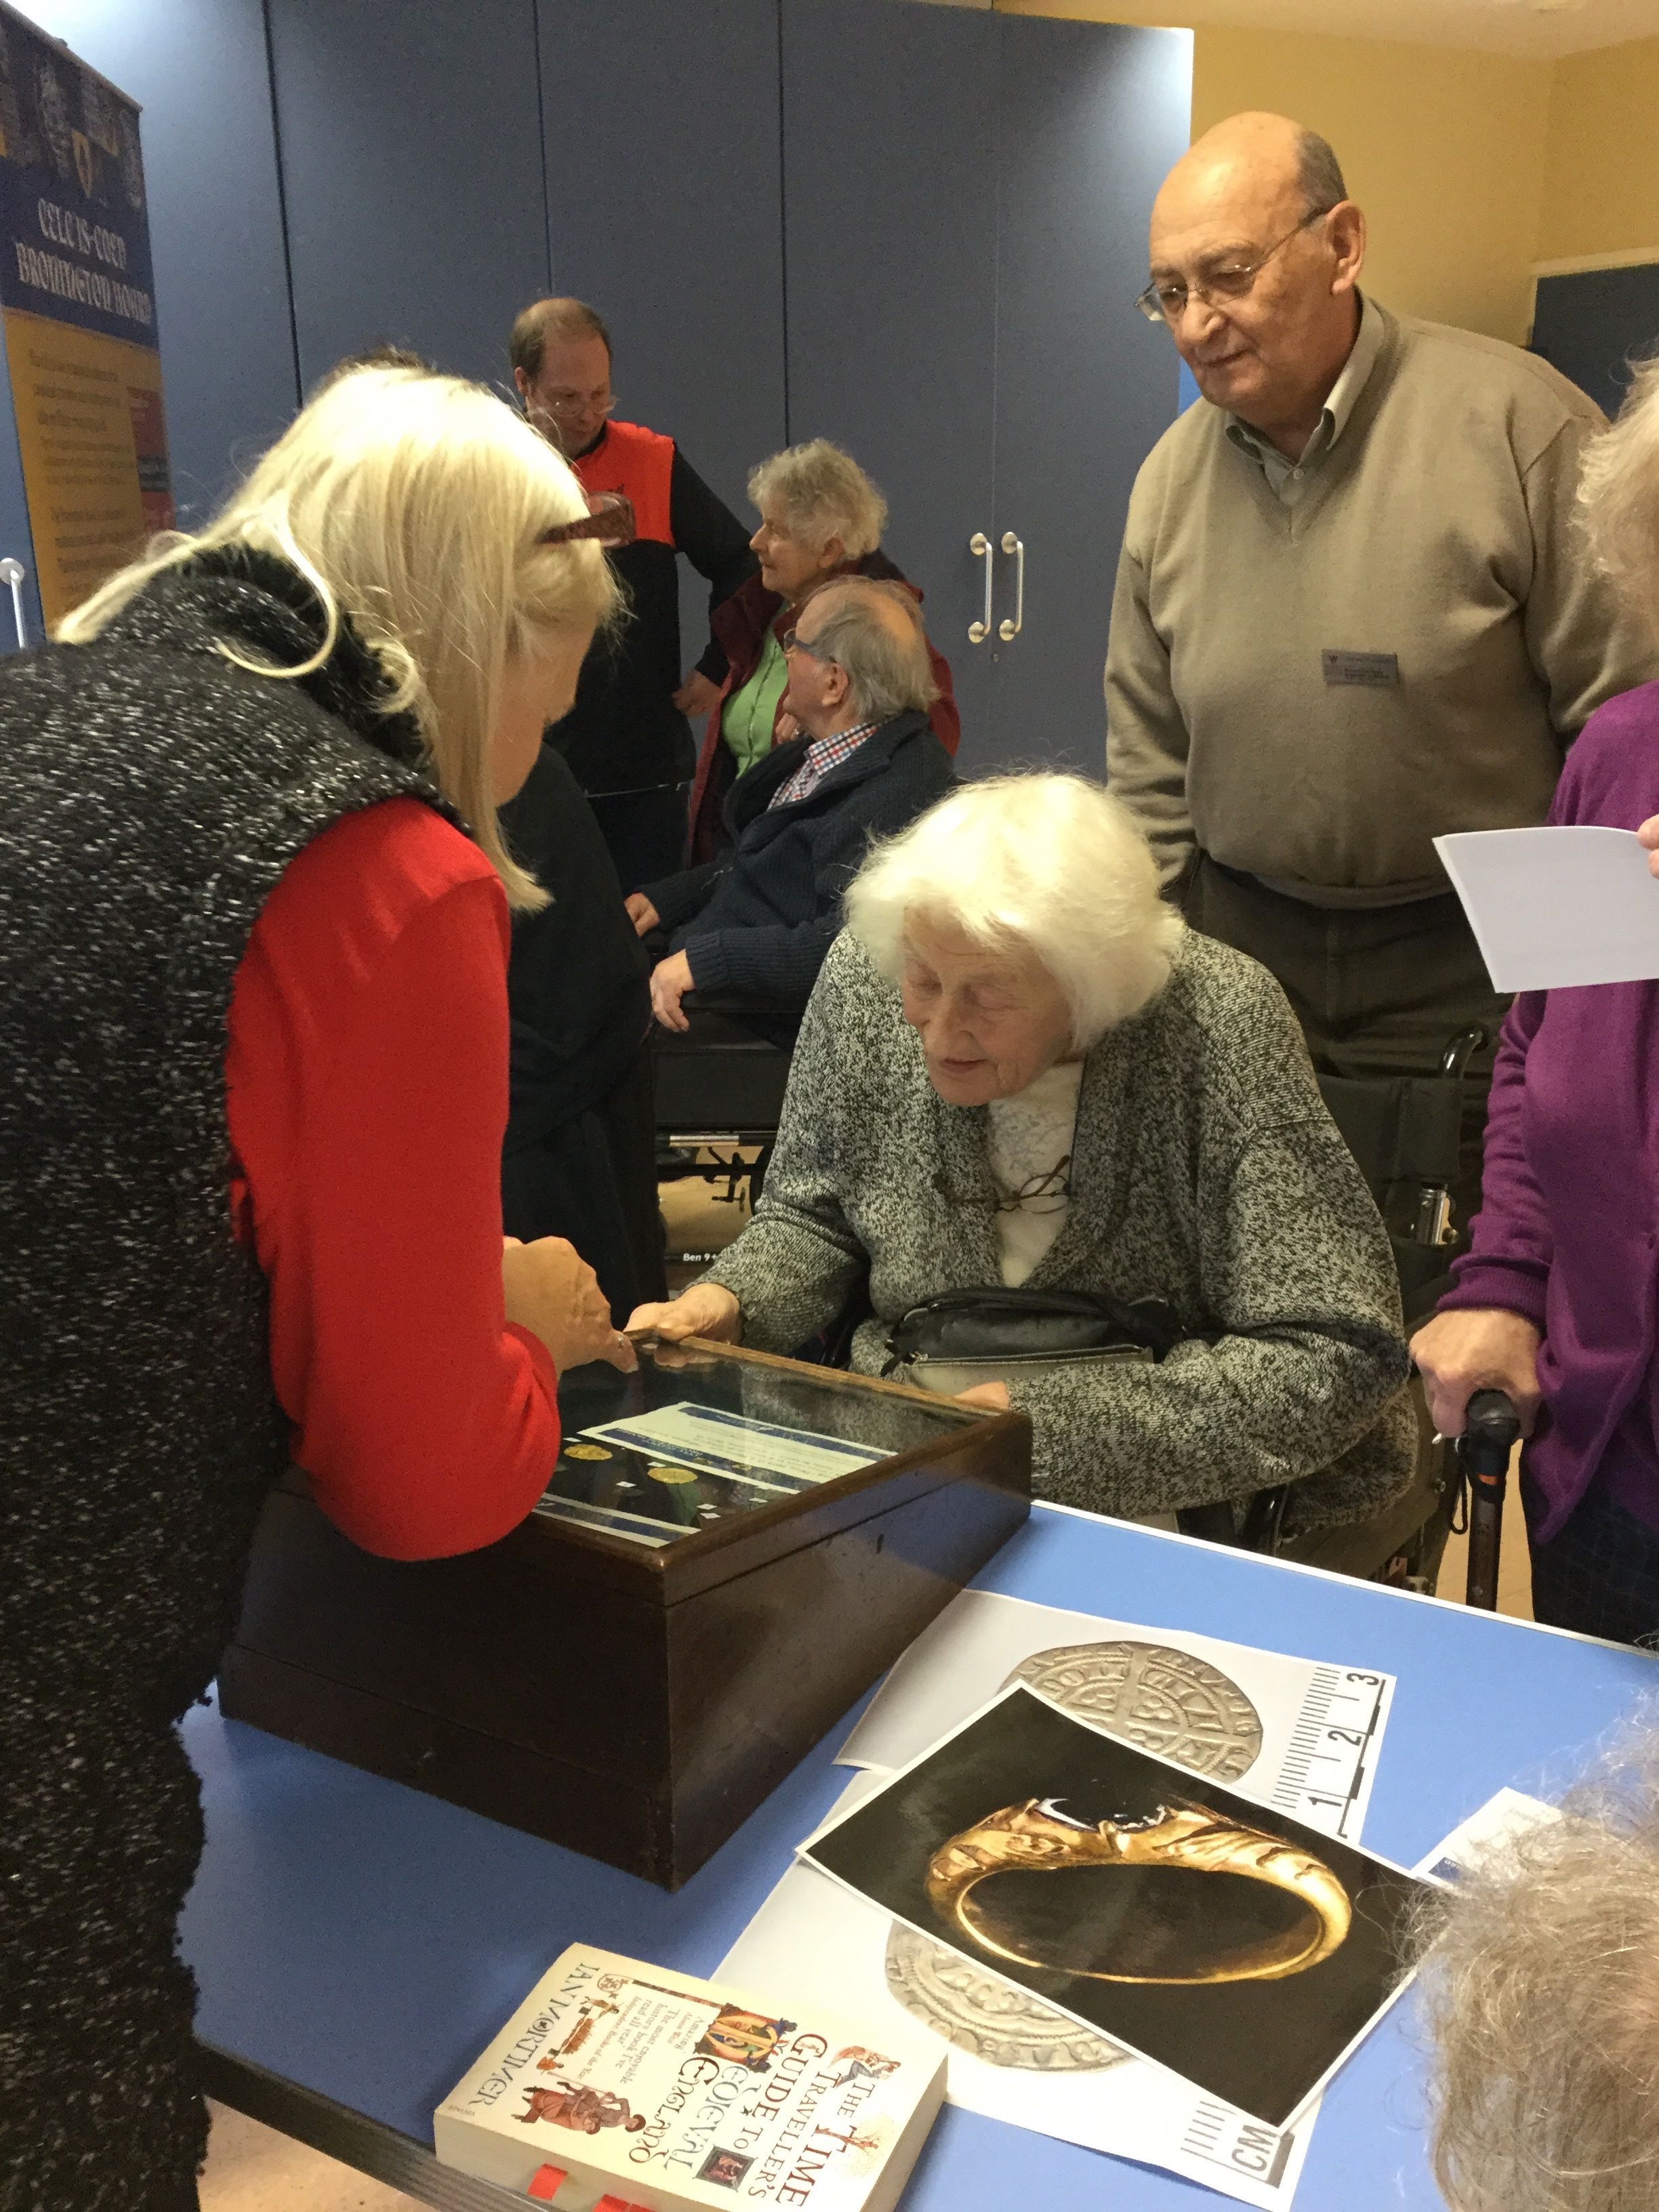 People discussing a display of coins.